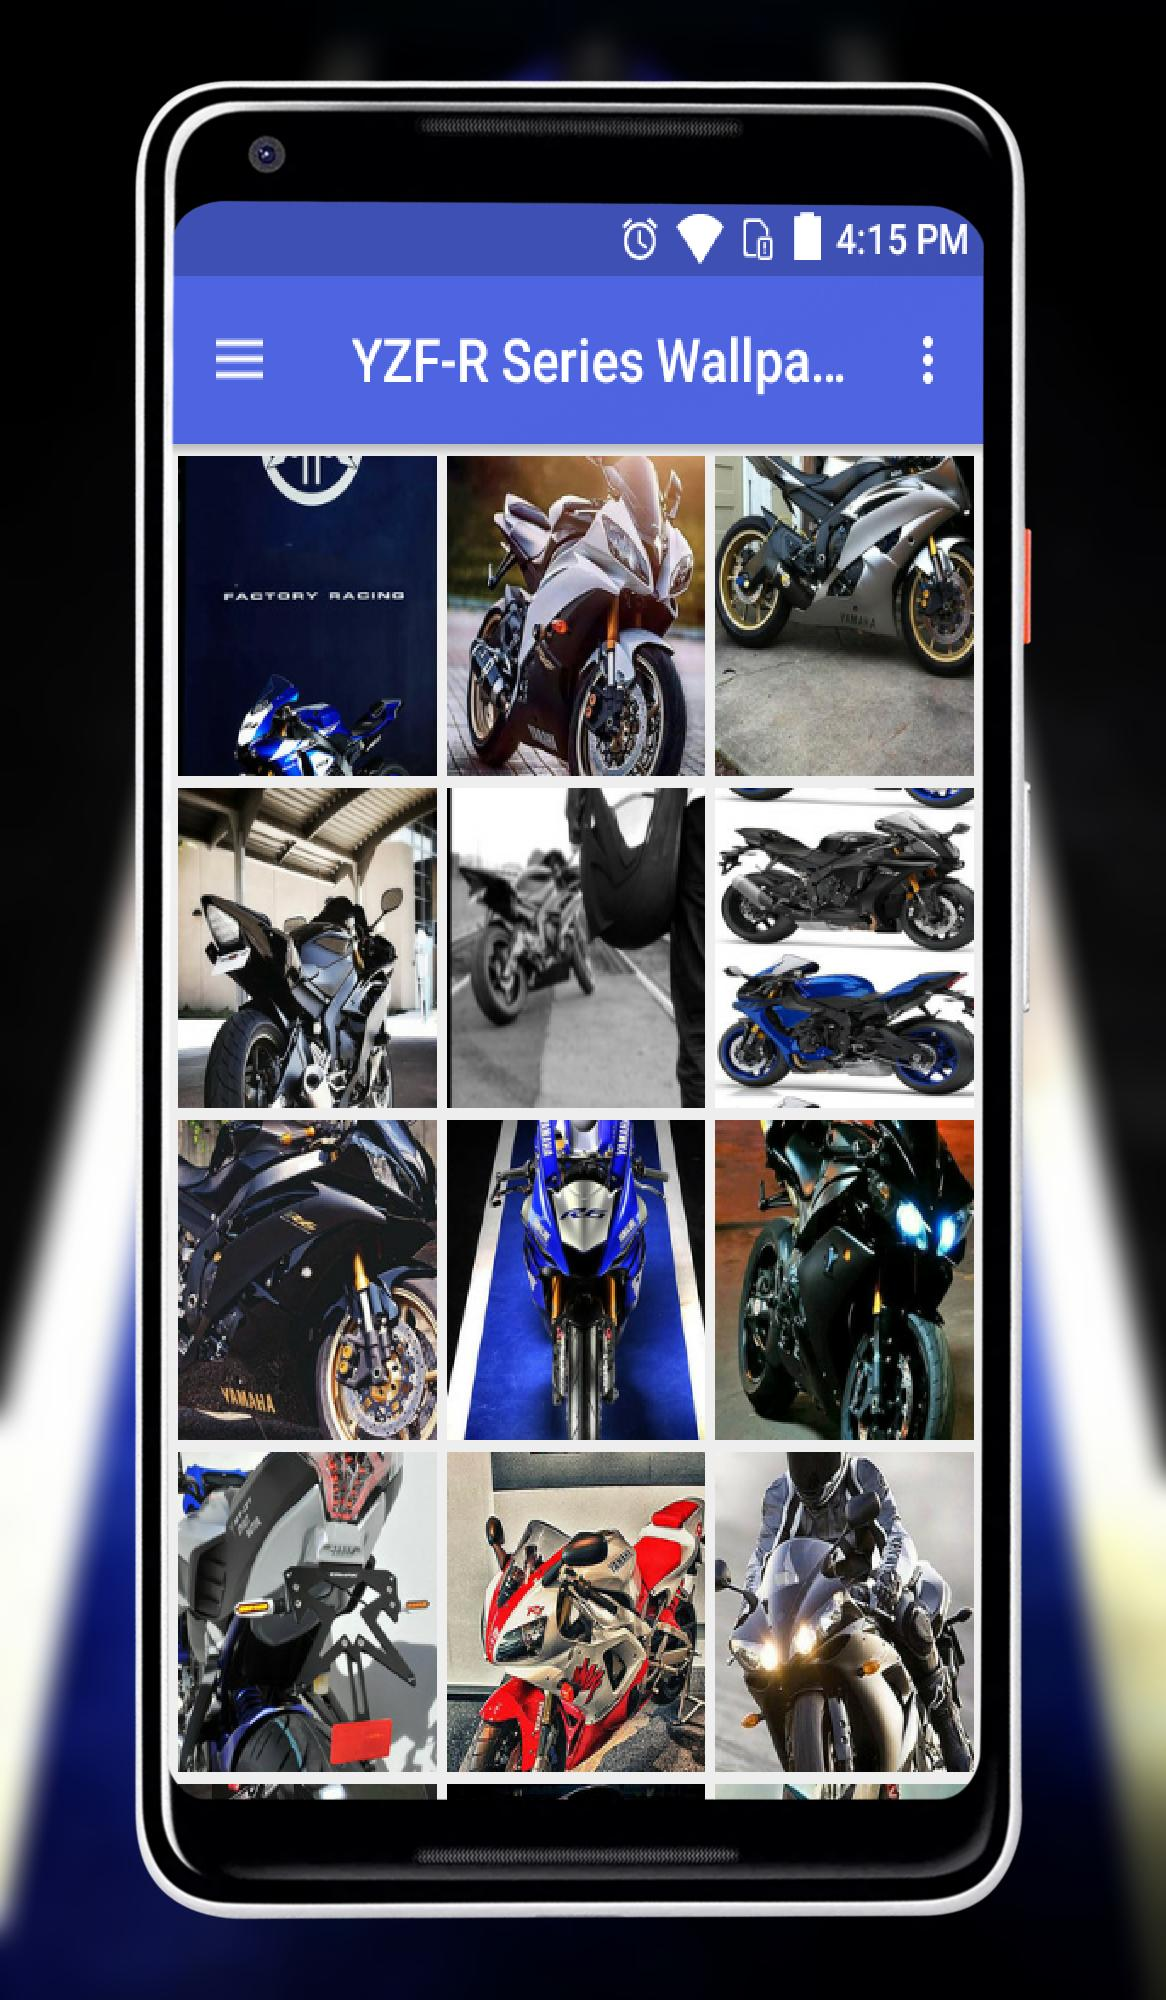 Yzf R Series Wallpaper For Android Apk Download